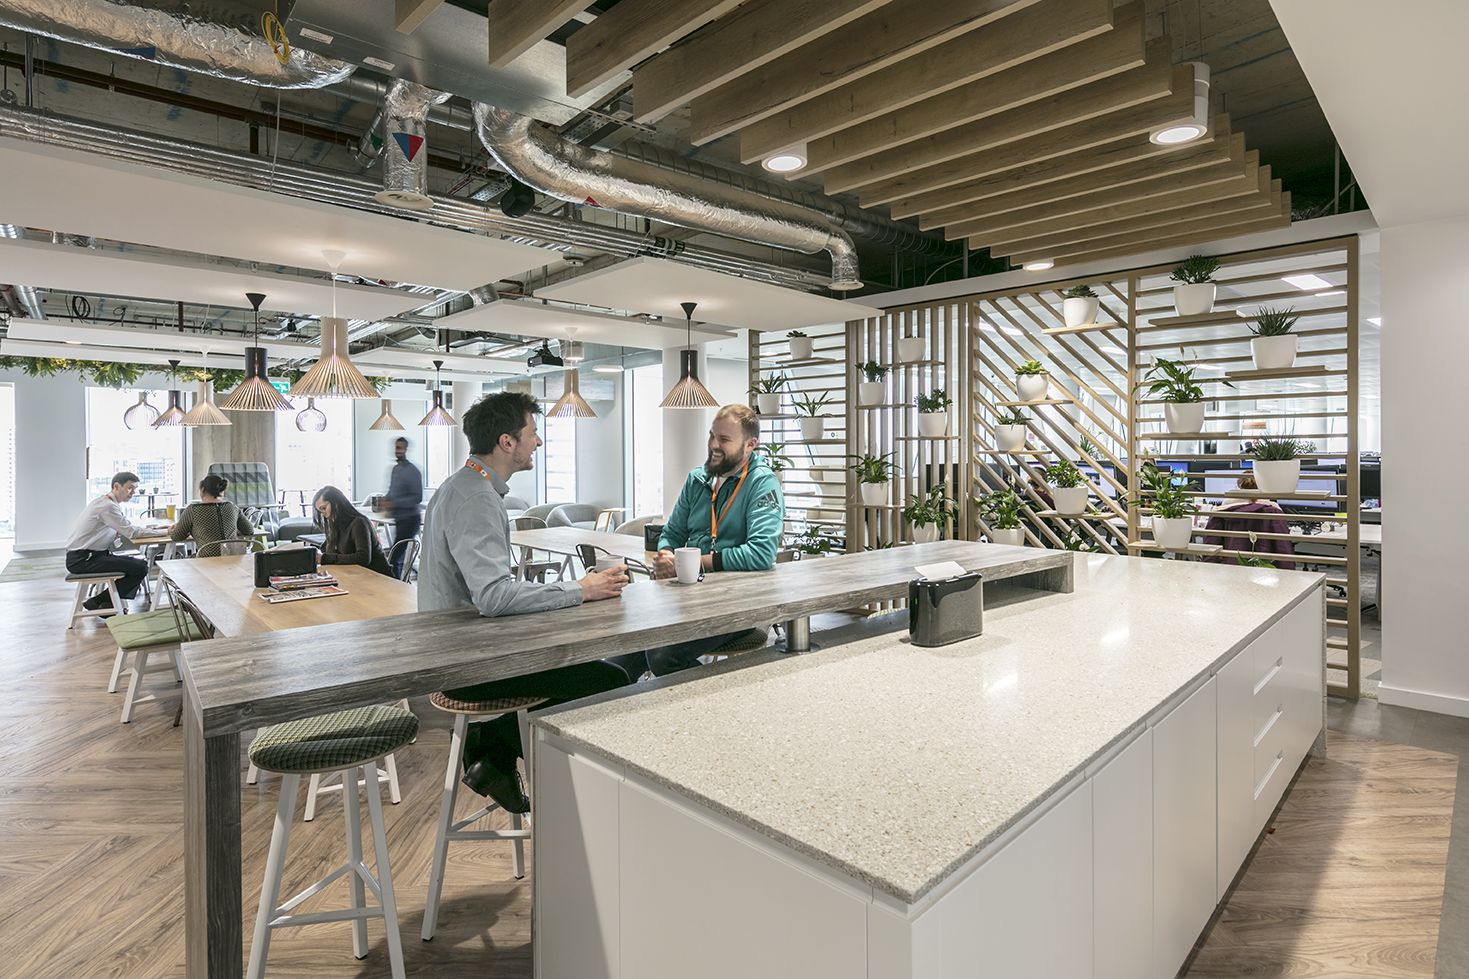 How do you create a workplace that smiles?